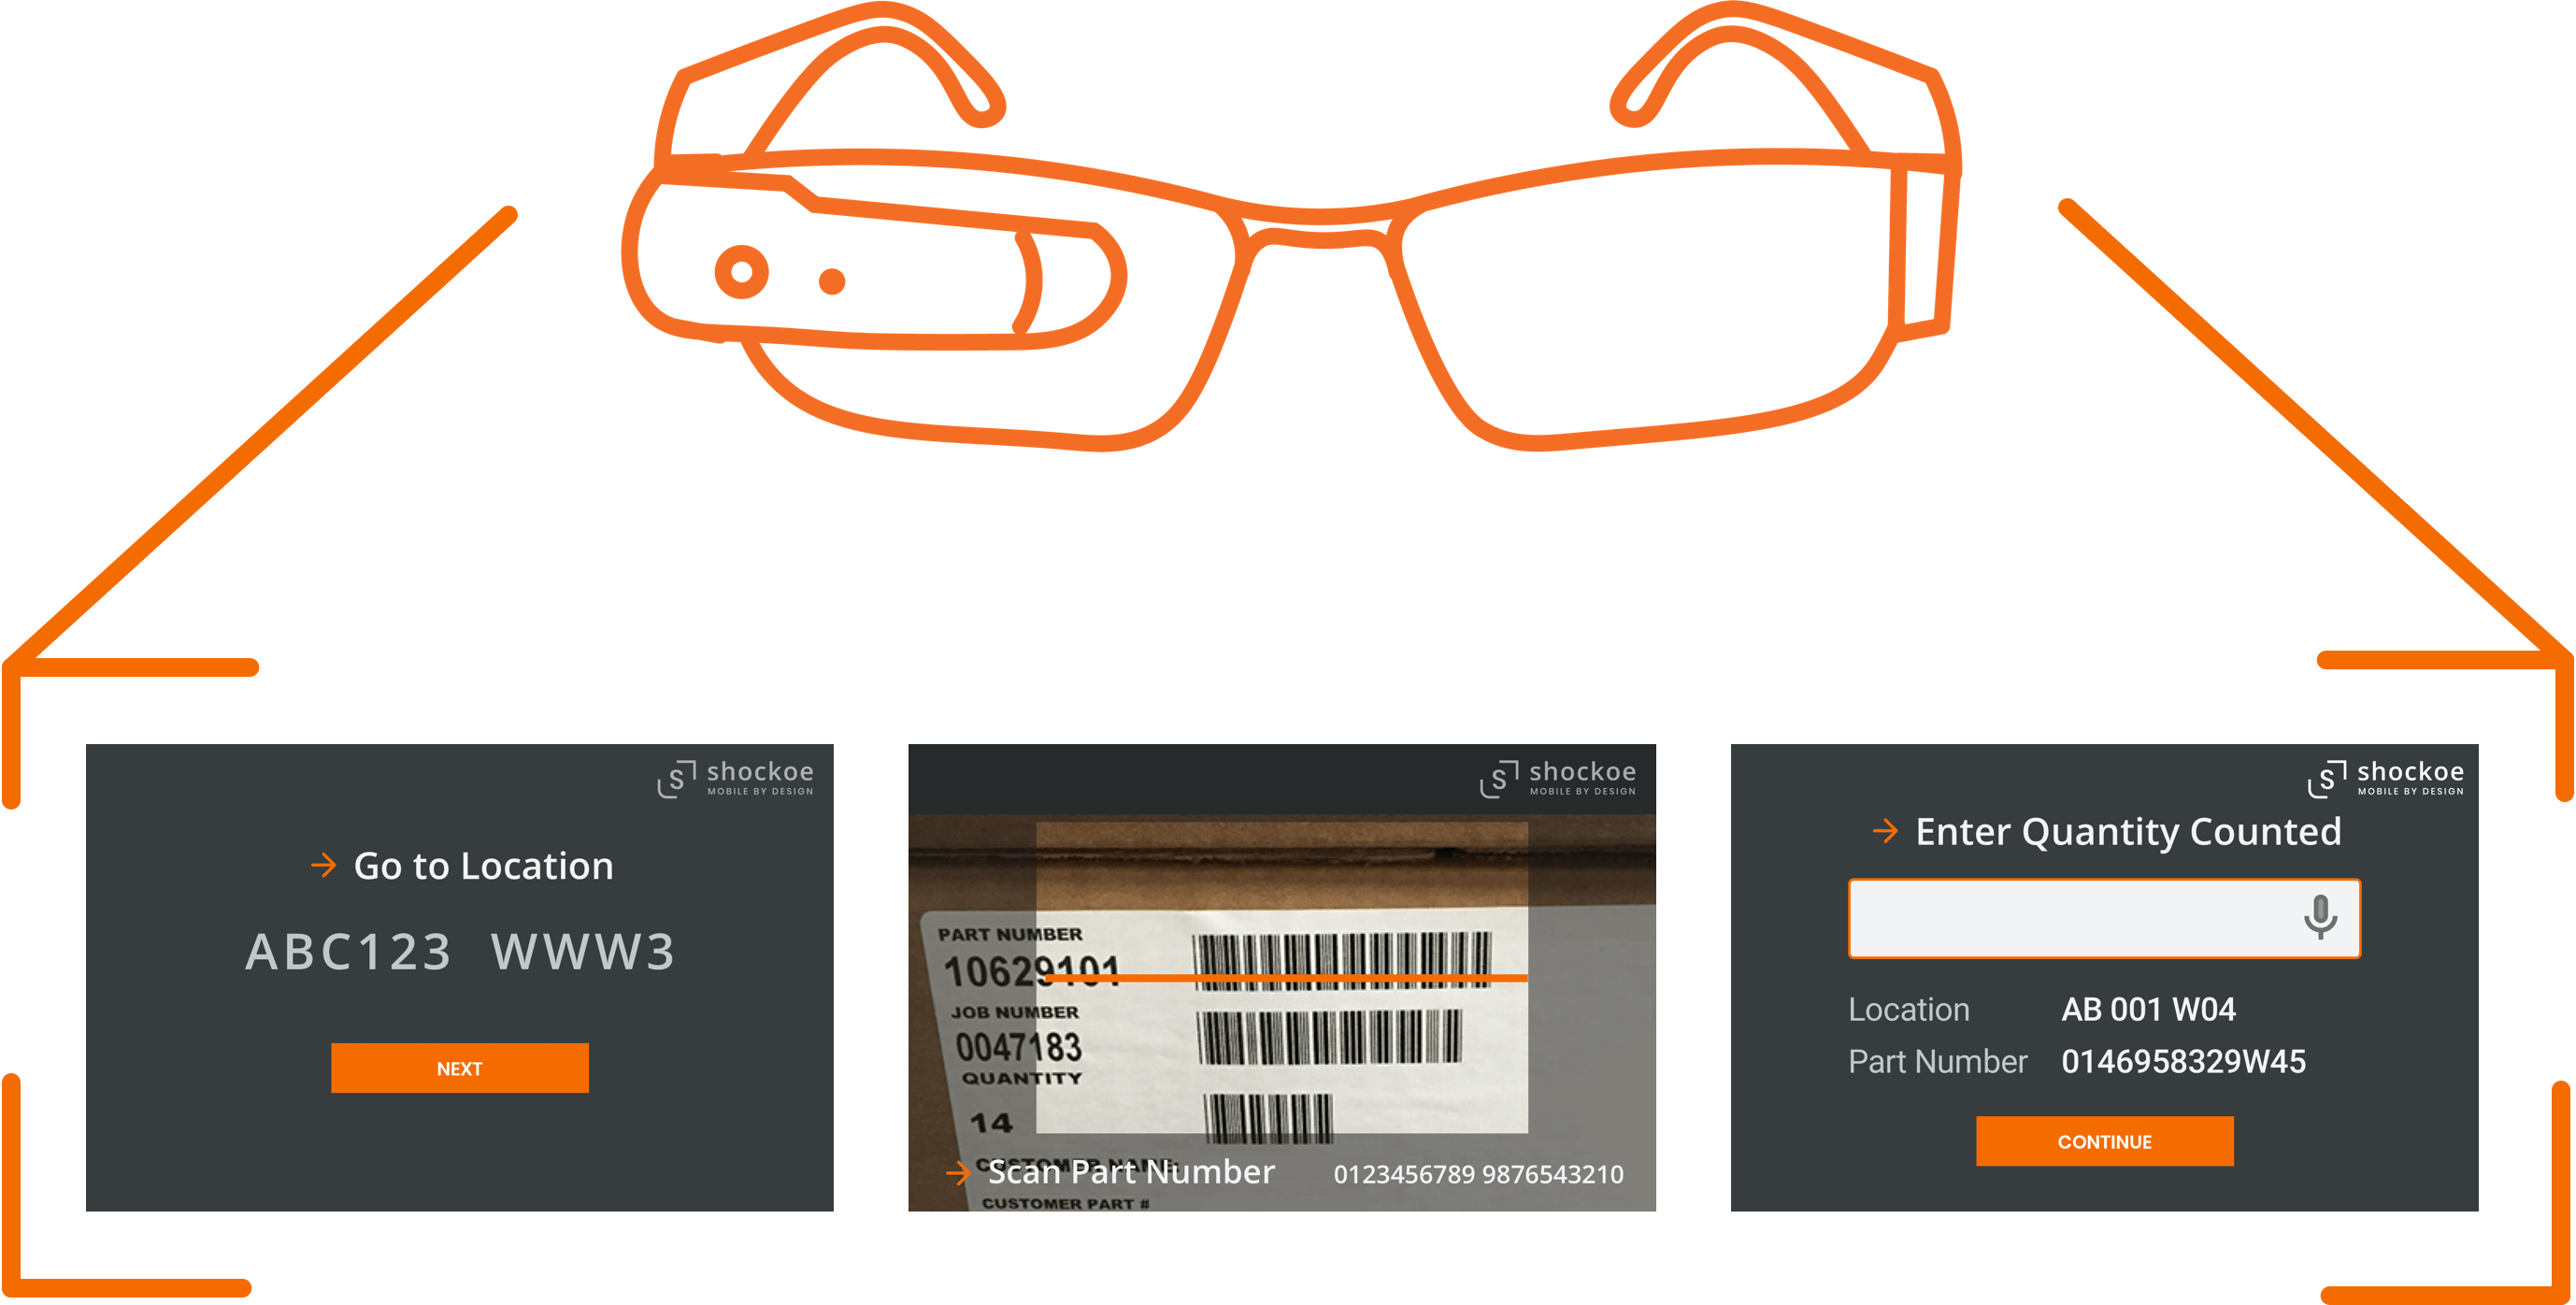 integrating with smart glasses